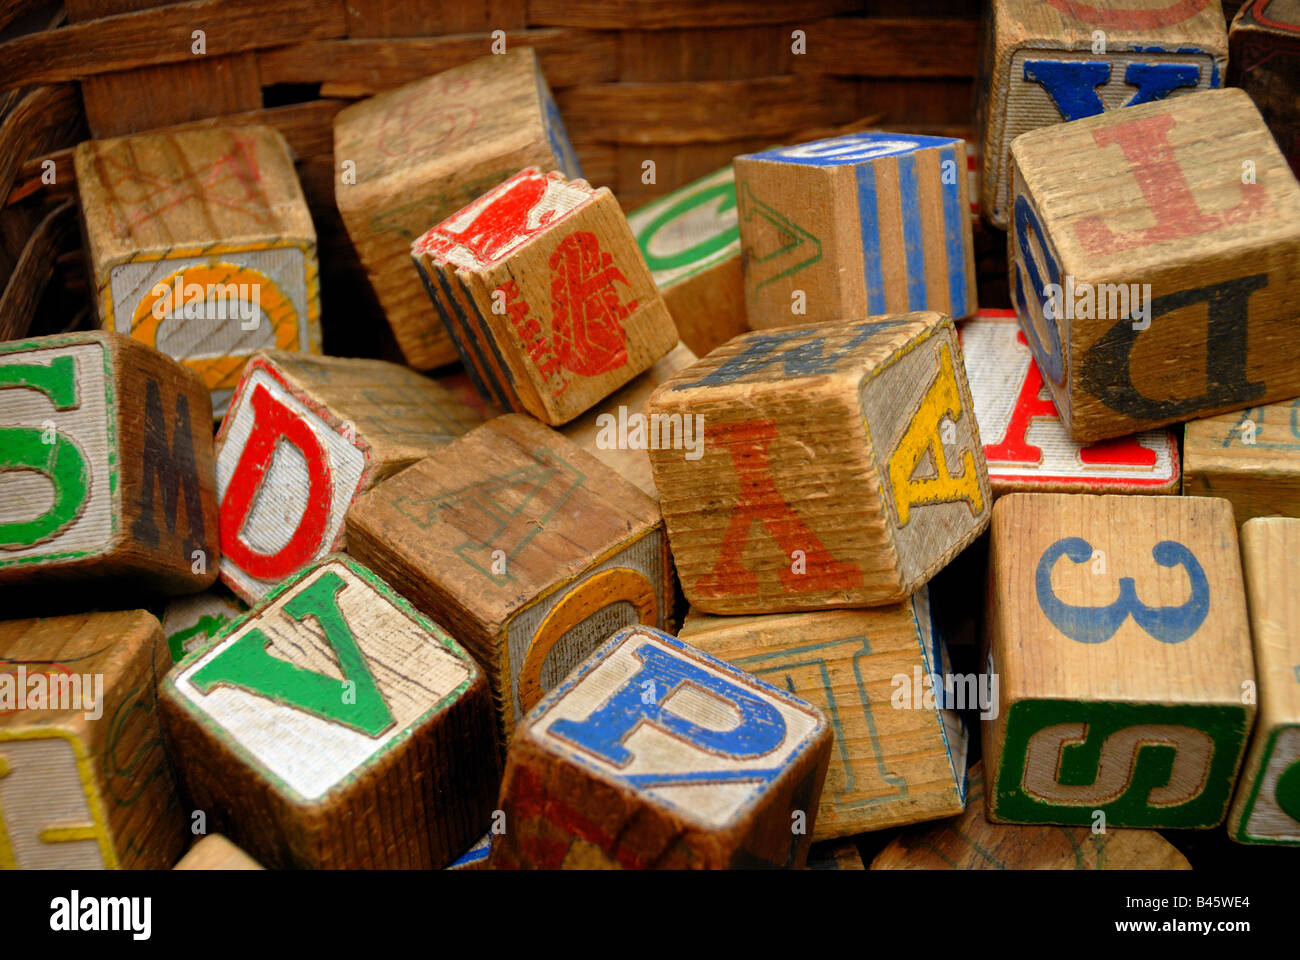 Vintage wooden blocks with colorful letters and numbers on them, in an antique store. Stock Photo